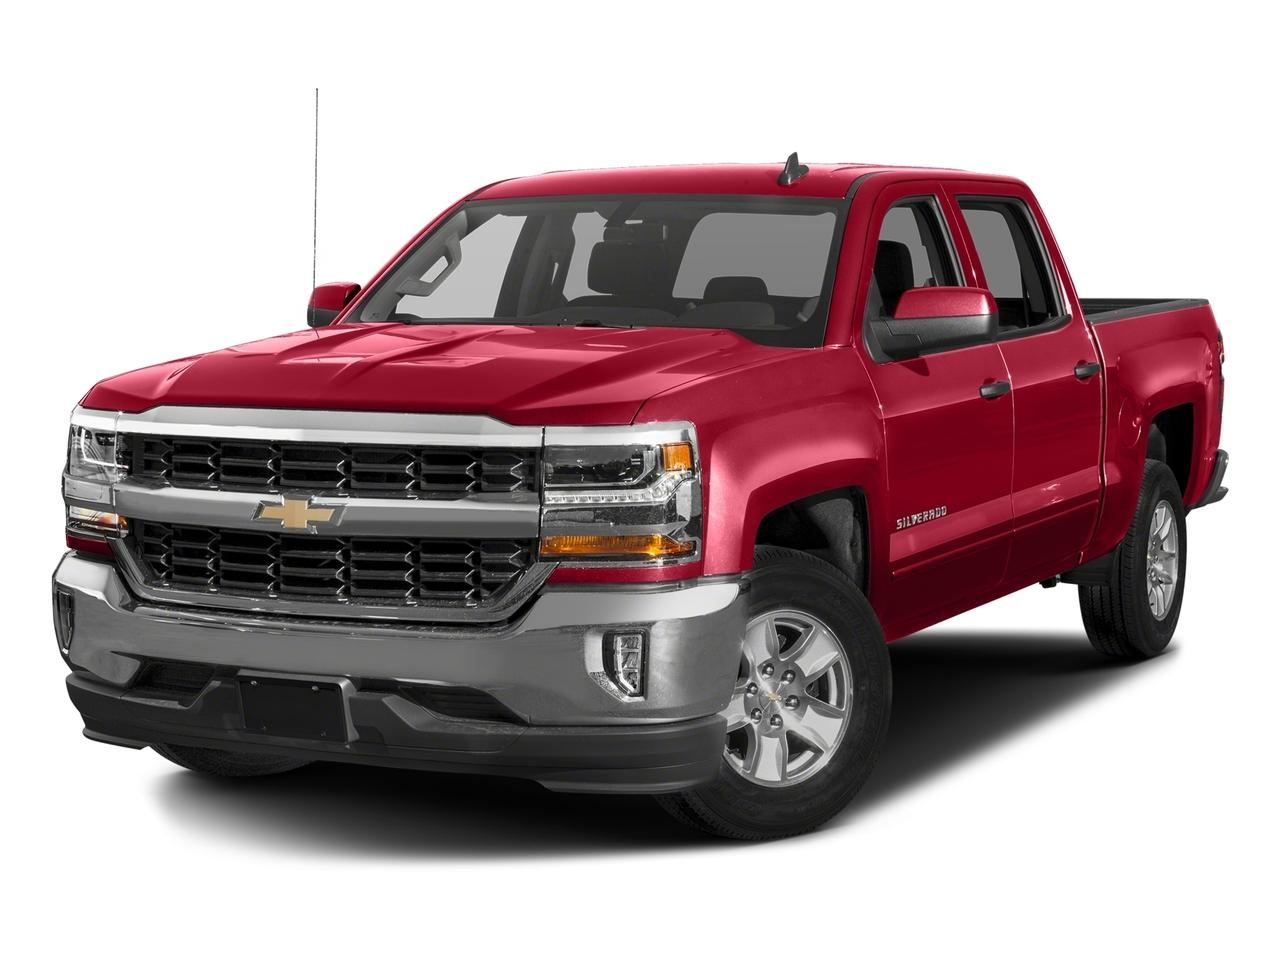 2018 Chevrolet Silverado 1500 Vehicle Photo in Chickasha, OK 73018